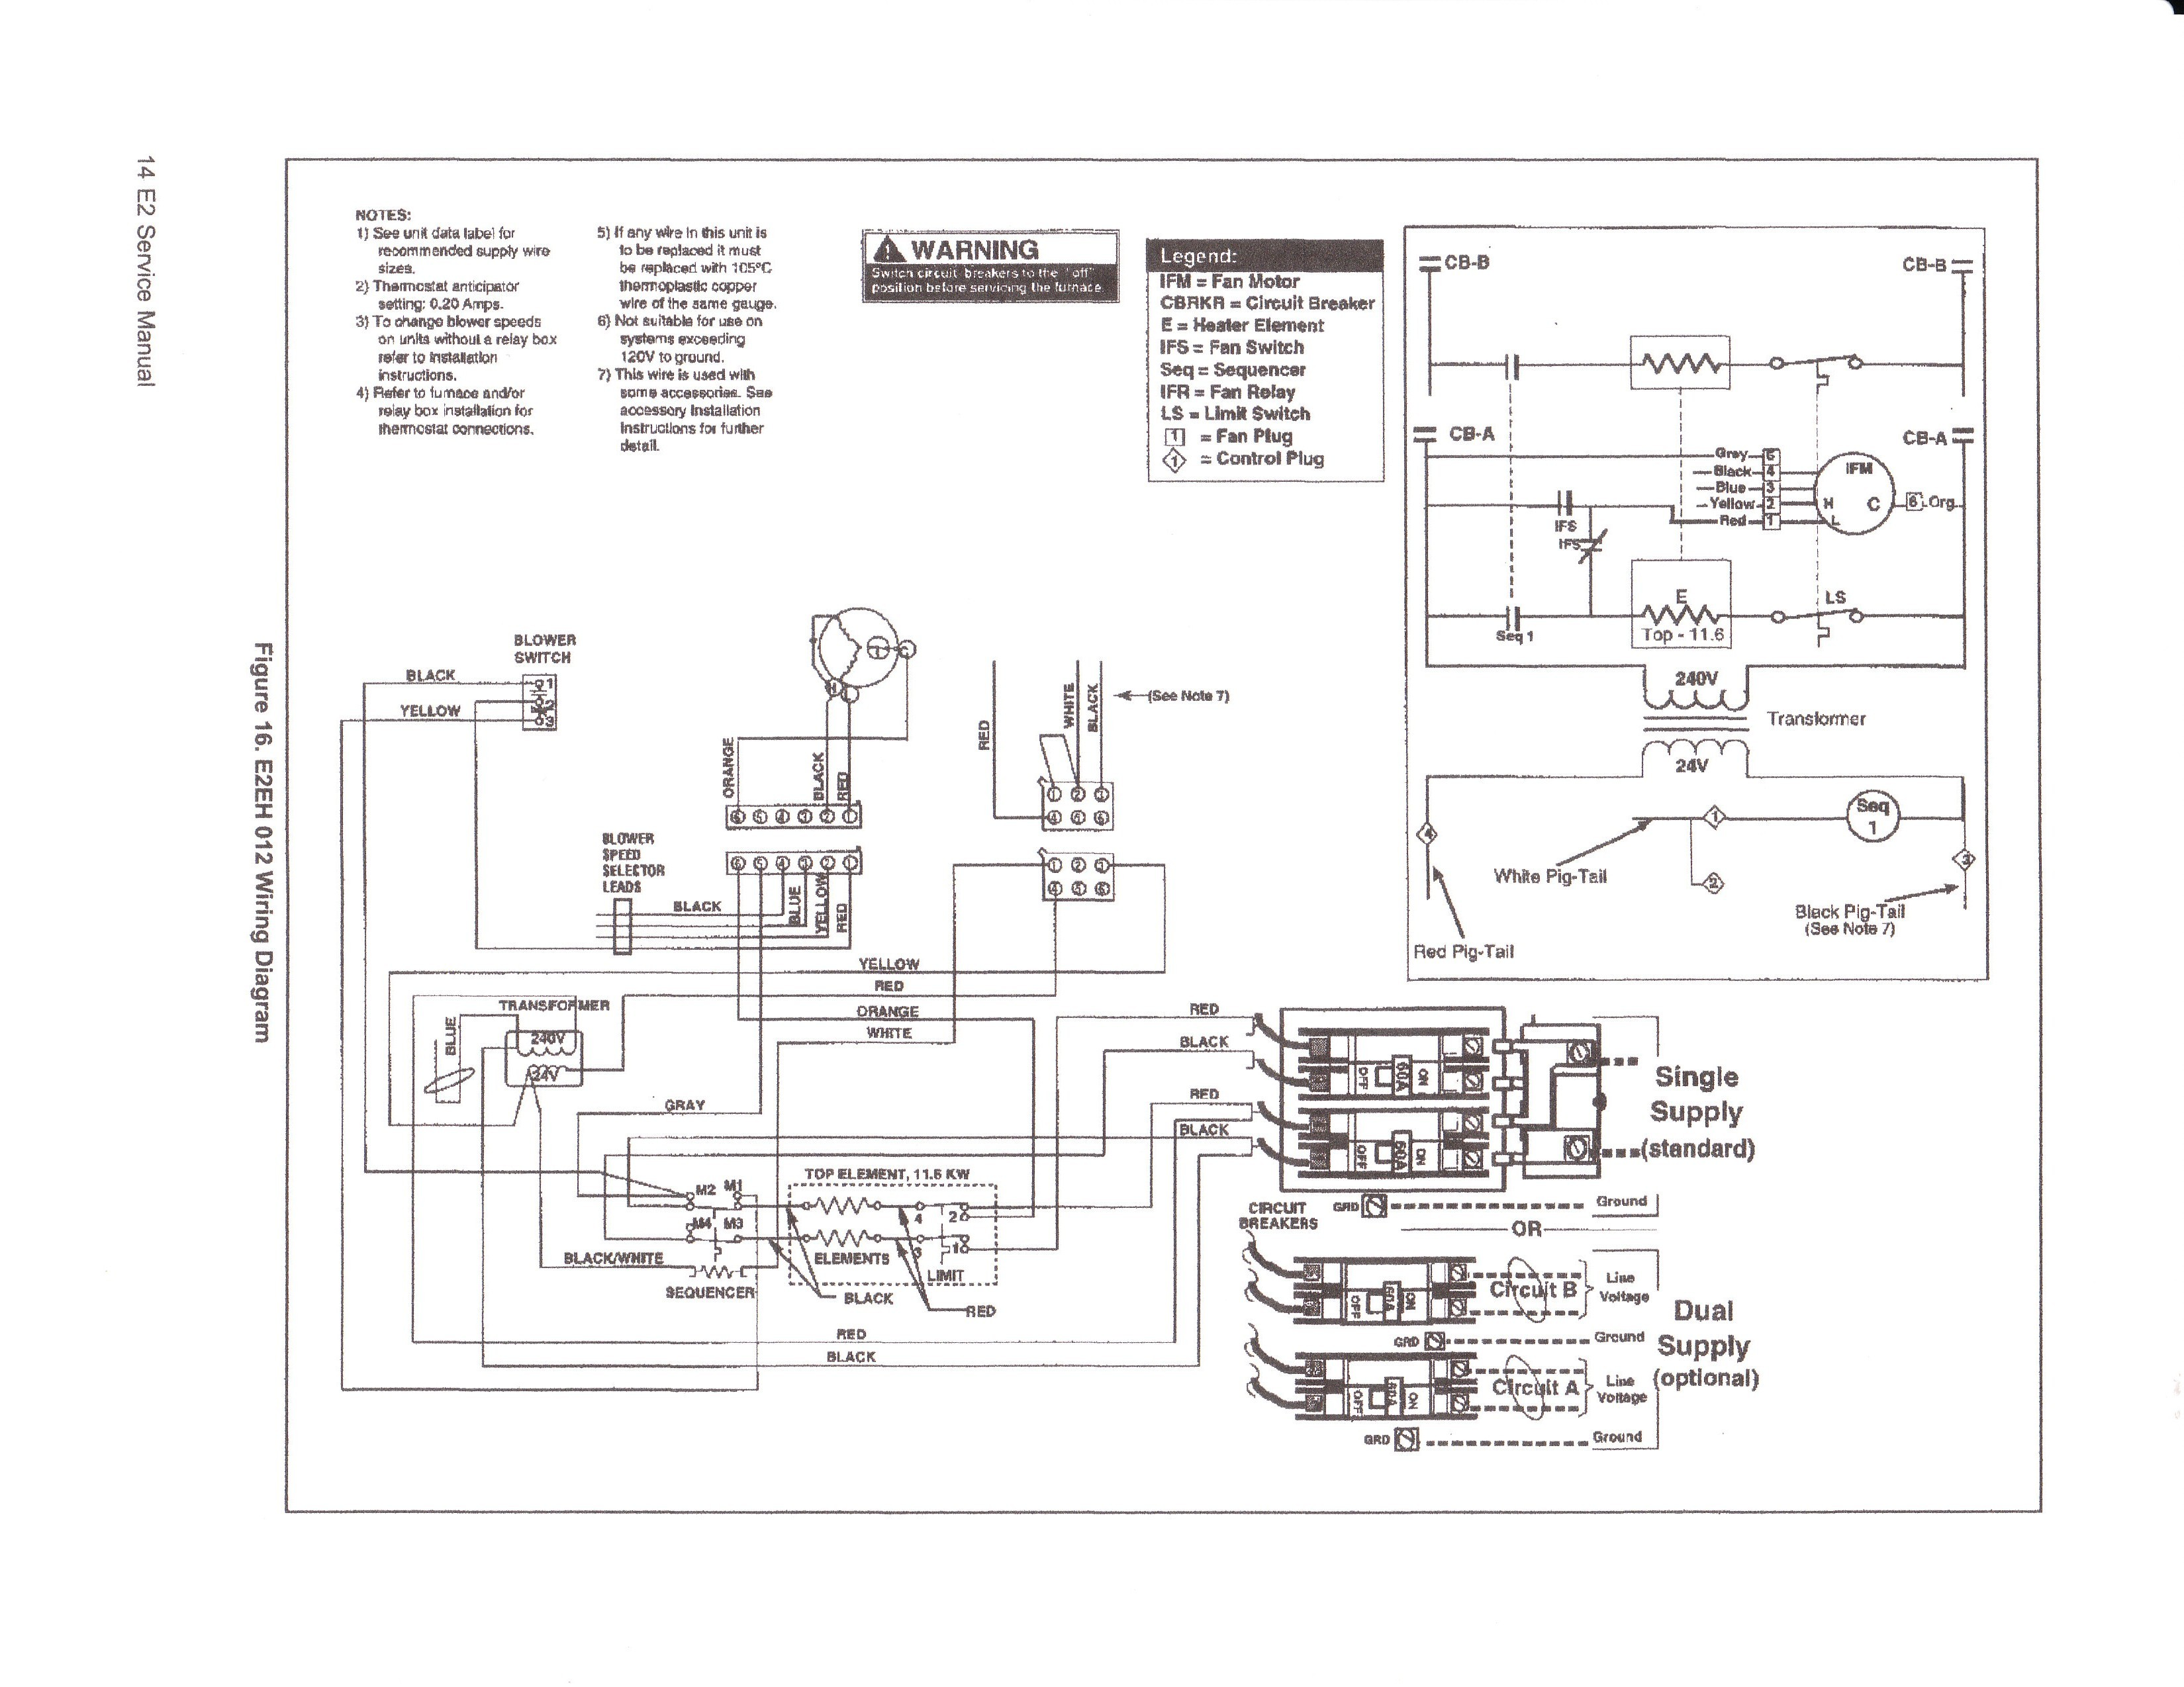 Goodman ac wiring diagram wiring diagram image wiring diagram electric furnace wire goodman to ripping diagrams cheapraybanclubmaster Images